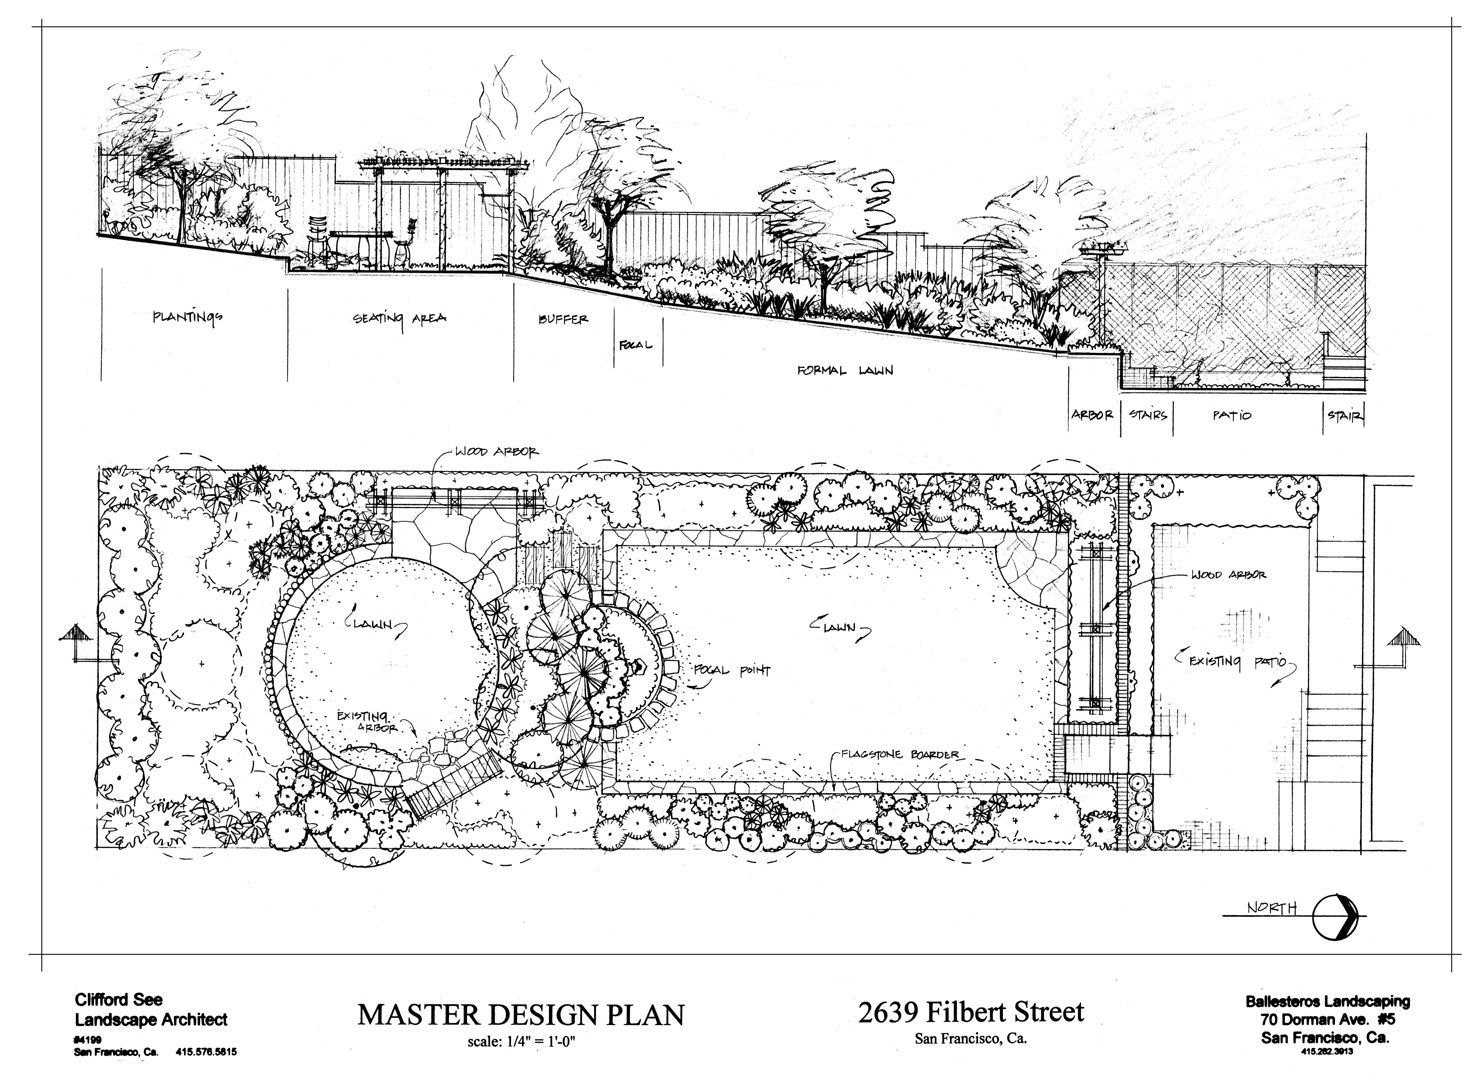 Best Landscape Plan Drawing 11 Pencil Photo, Images ... on drawing kitchen, drawing furniture plans, drawing addition plans, drawing tree house plans, drawing patio plans, driveway drawing plans, drawing easel plans, drawing bbq plans, drawing electrical plans, drawing small house plans, basement drawing plans, drawing construction plans, drawing desk plans, drawing balcony plans, civil engineering drawing plans, drawing deck plans, drawing city plans, drawing restaurant plans, drawing house floor plans, drawing horse plans,